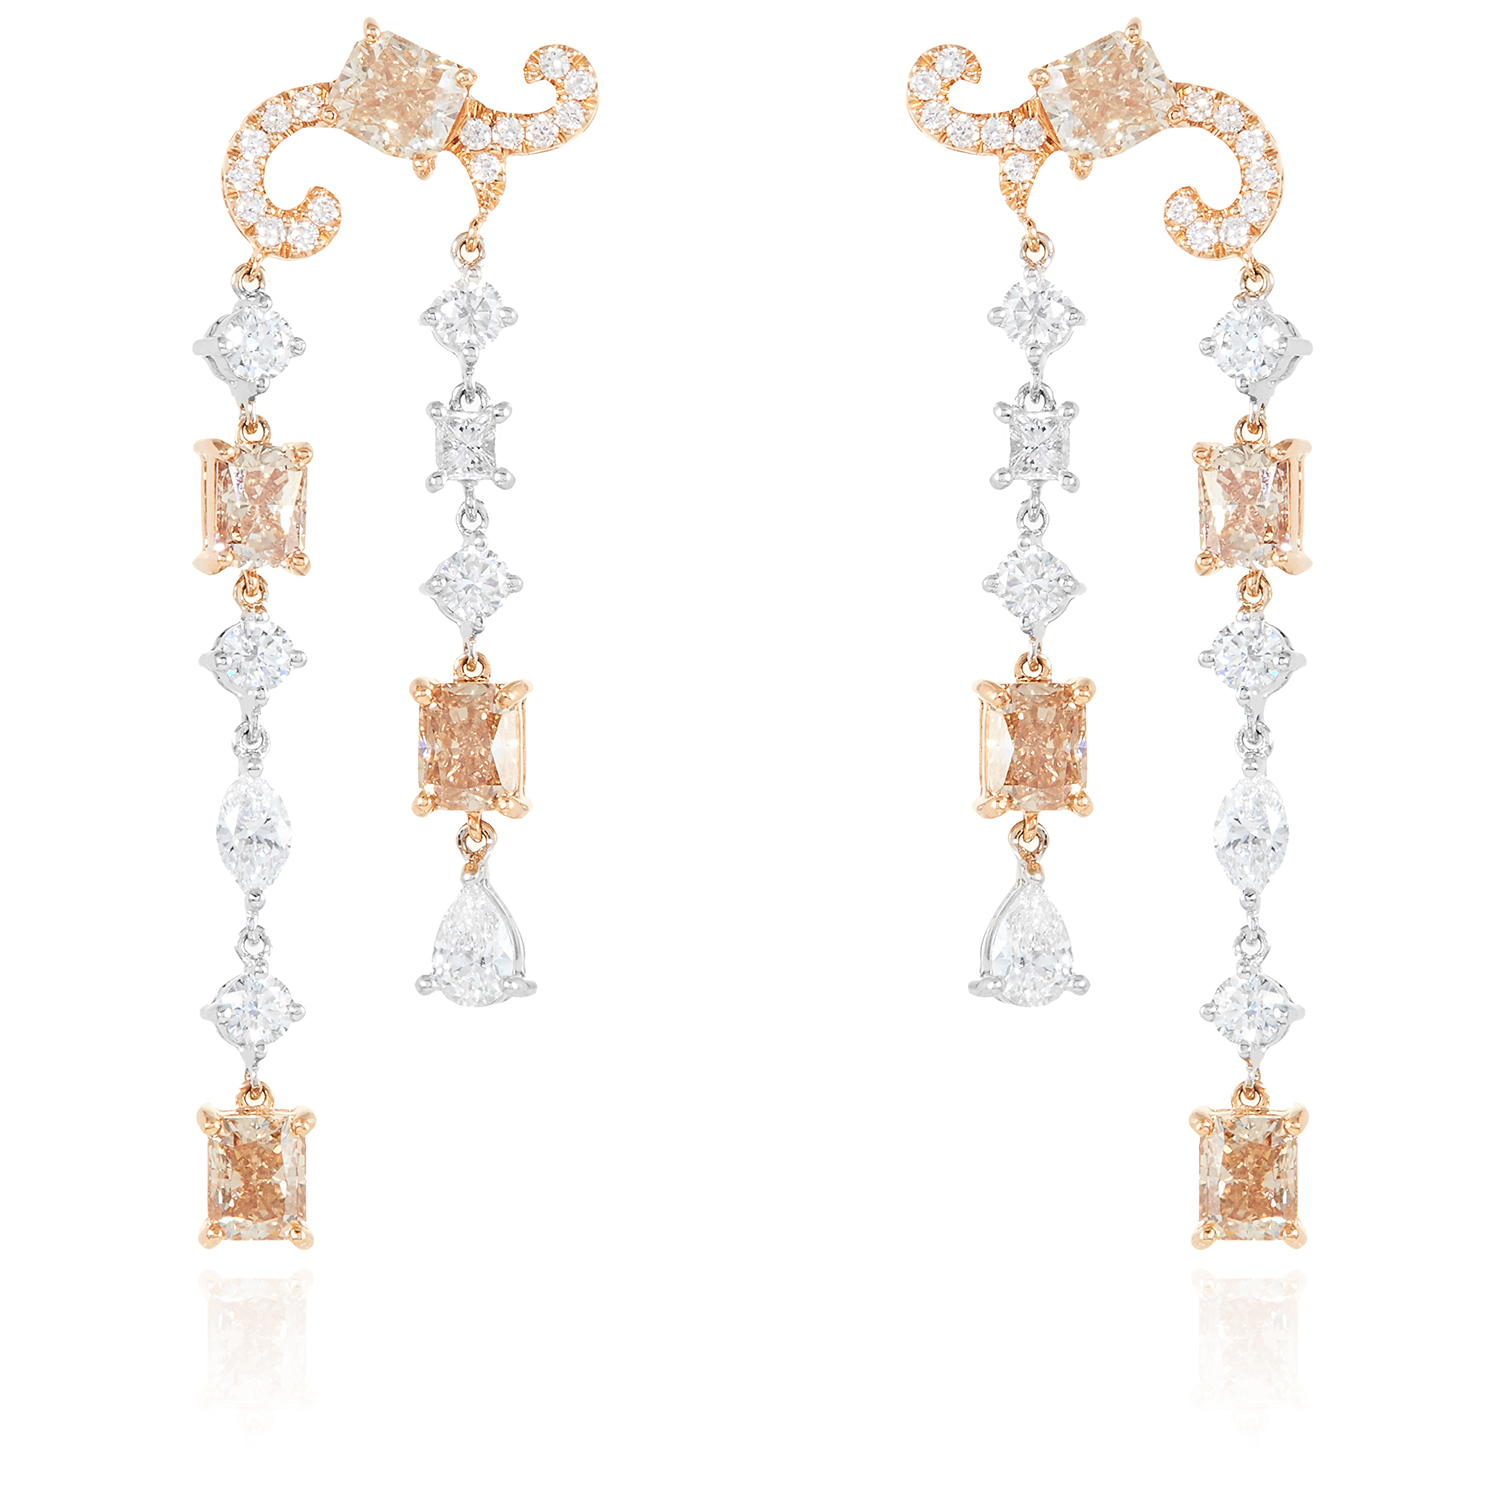 A PAIR OF 5.45 CARAT DIAMOND EARRINGS in 18ct white and rose gold, each set with a radiant cut fancy